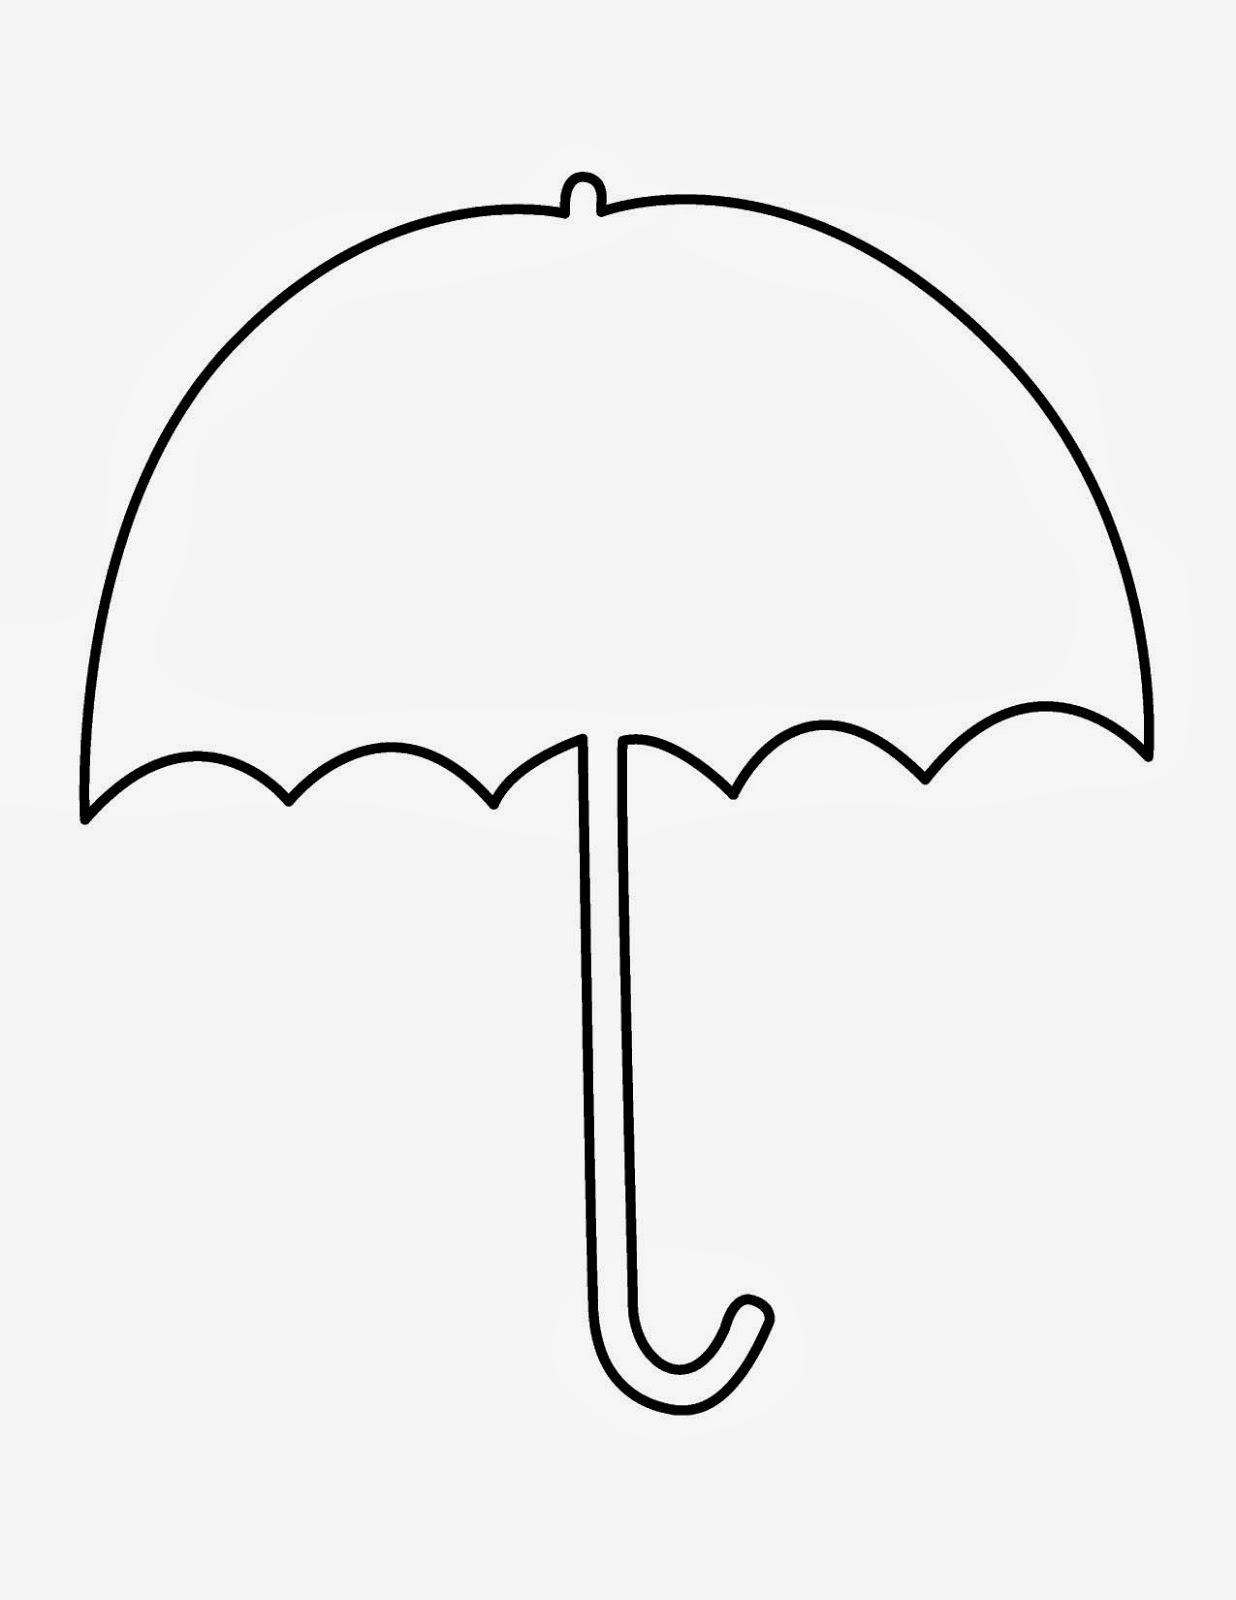 Clip Art Clipart Umbrella baby sprinkle umbrella clipart kid shower clip art black and white